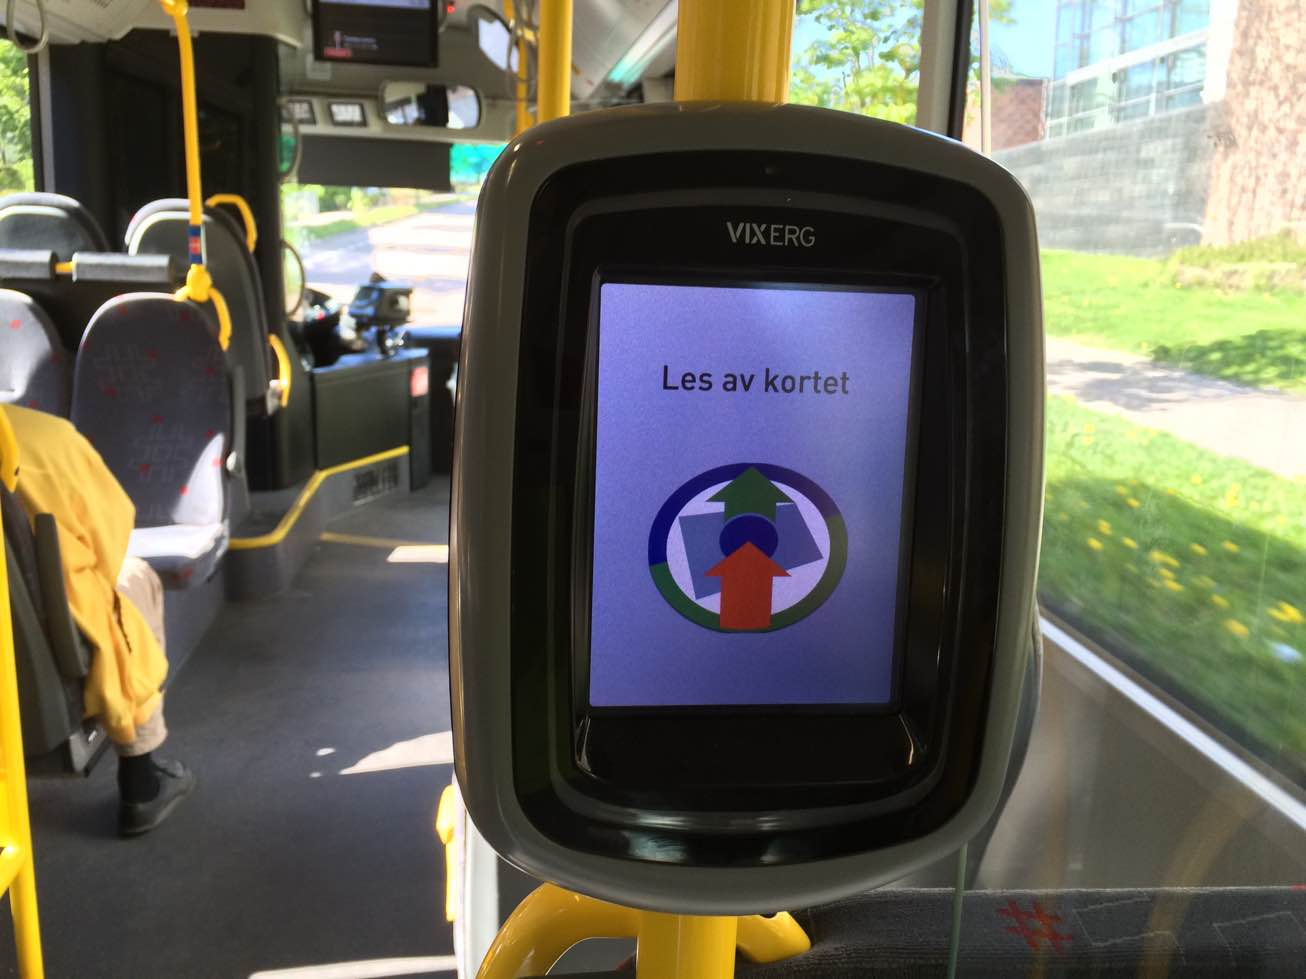 Ruter, terminal for ticket scanning